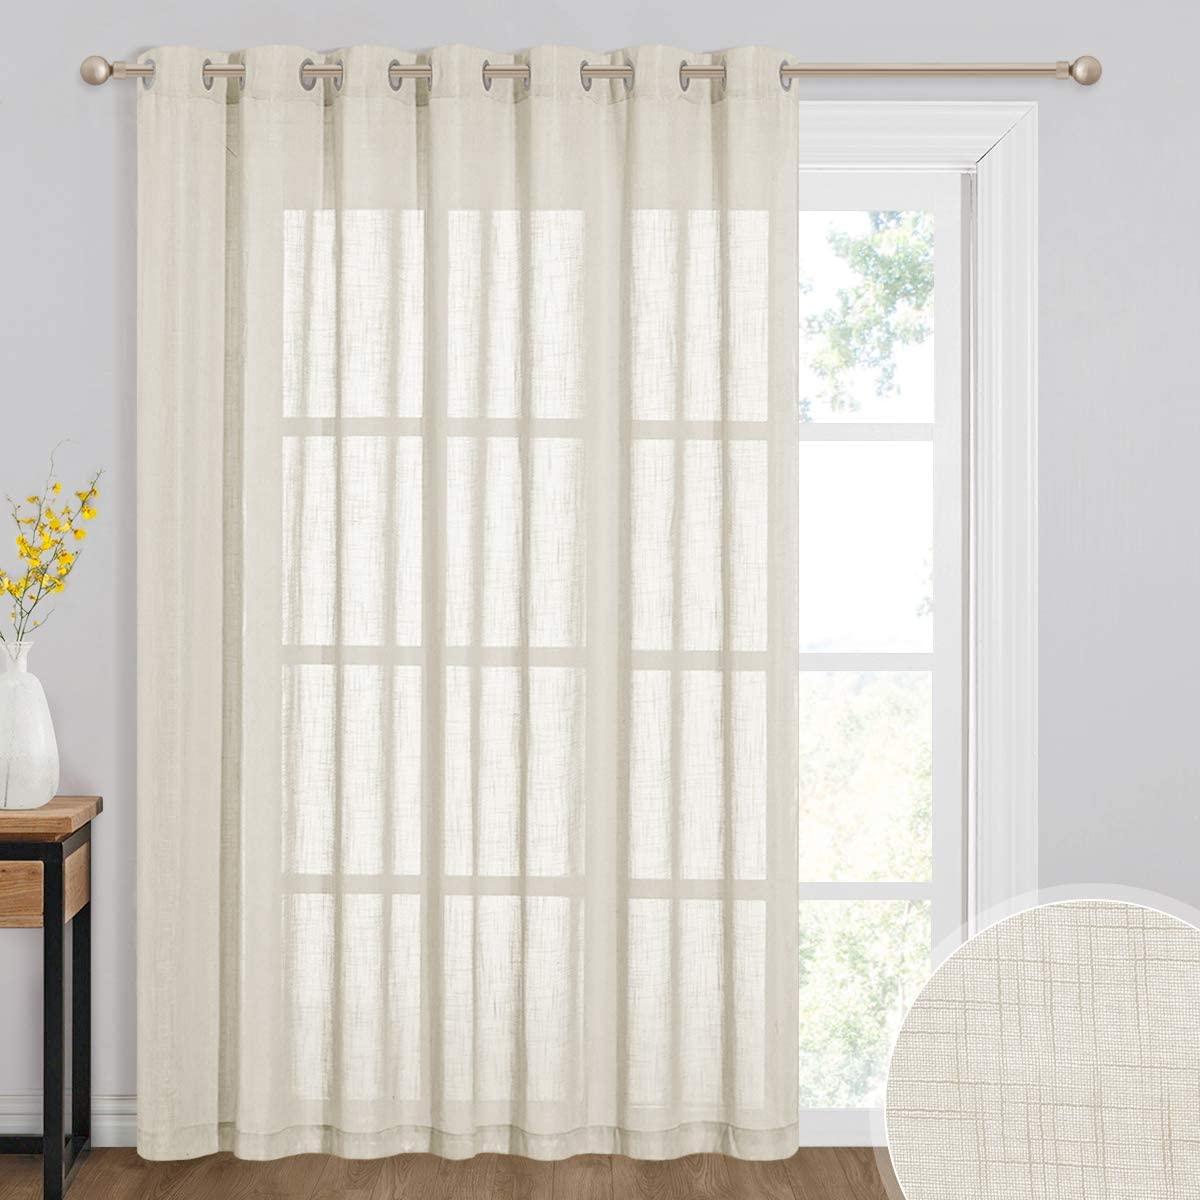 RYB HOME Sheer White Curtains - Natural Linen Semi Sheer Curtains Grommet Privacy Protection for Bedroom Living Room Large Window Decor, 100 x 108 inch Long, Warm Beige